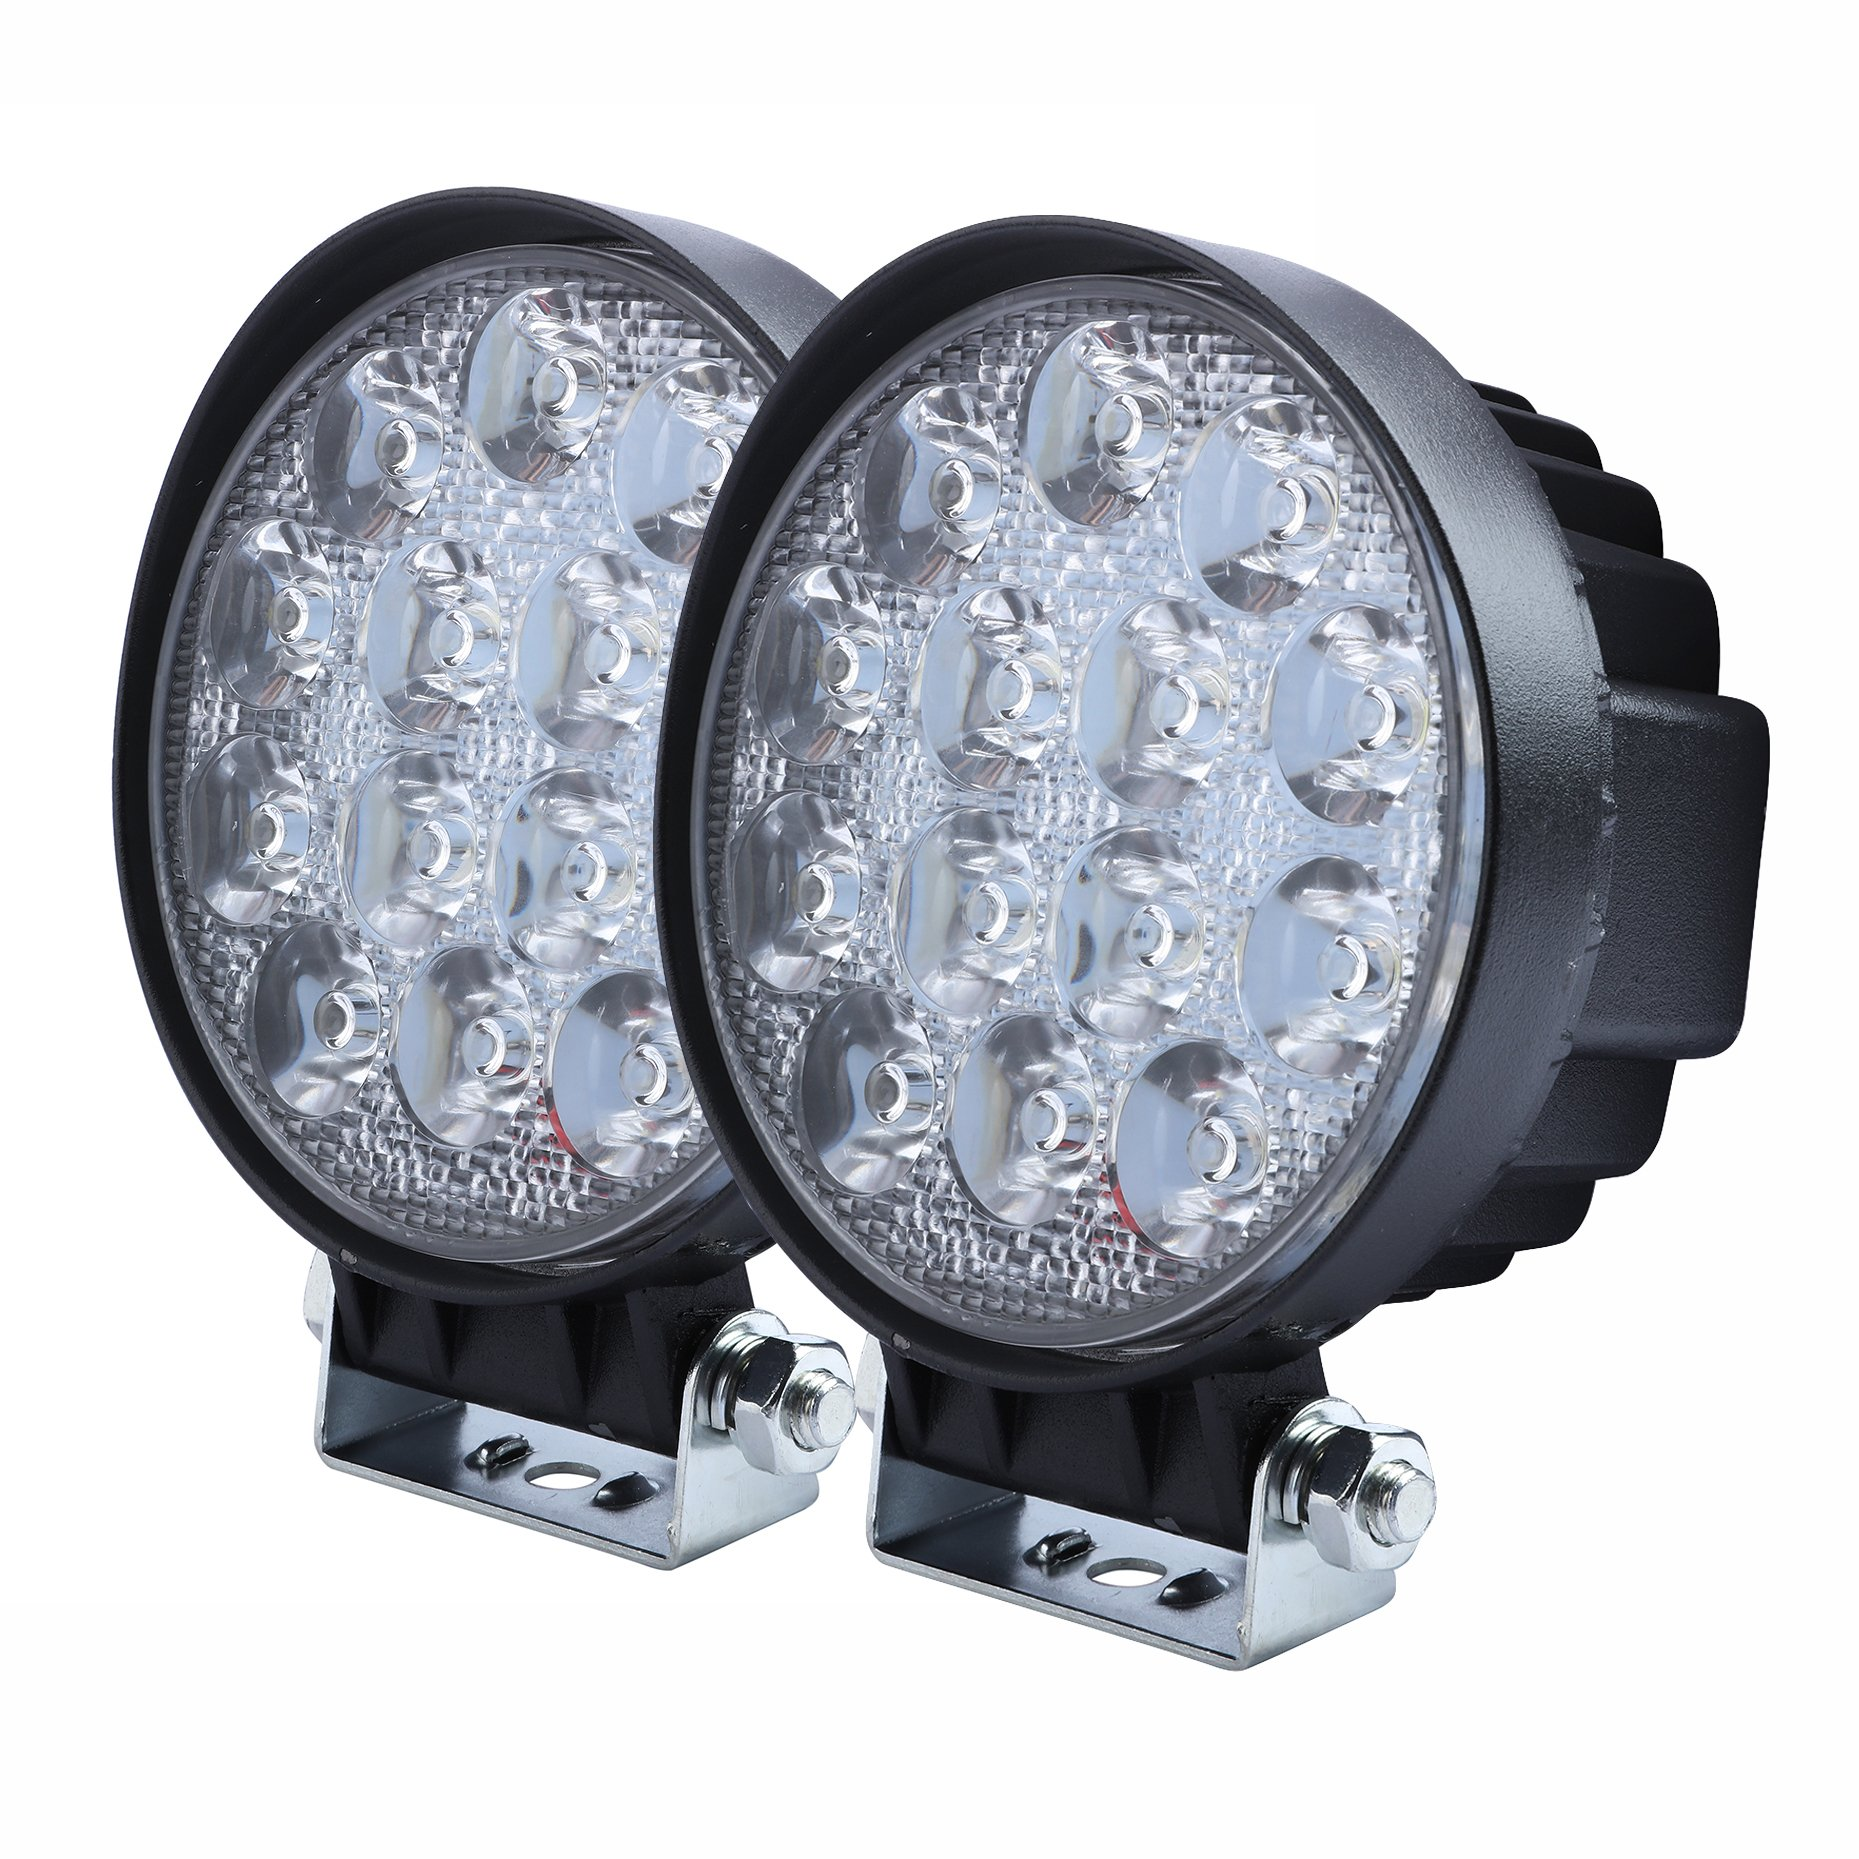 Cheap Round Driving Lights Find Deals On Line Westin Led Wiring Harness Kit Get Quotations Aellons Spot Work Light 2pcs 42watt High Power Epistar Leds Off Road